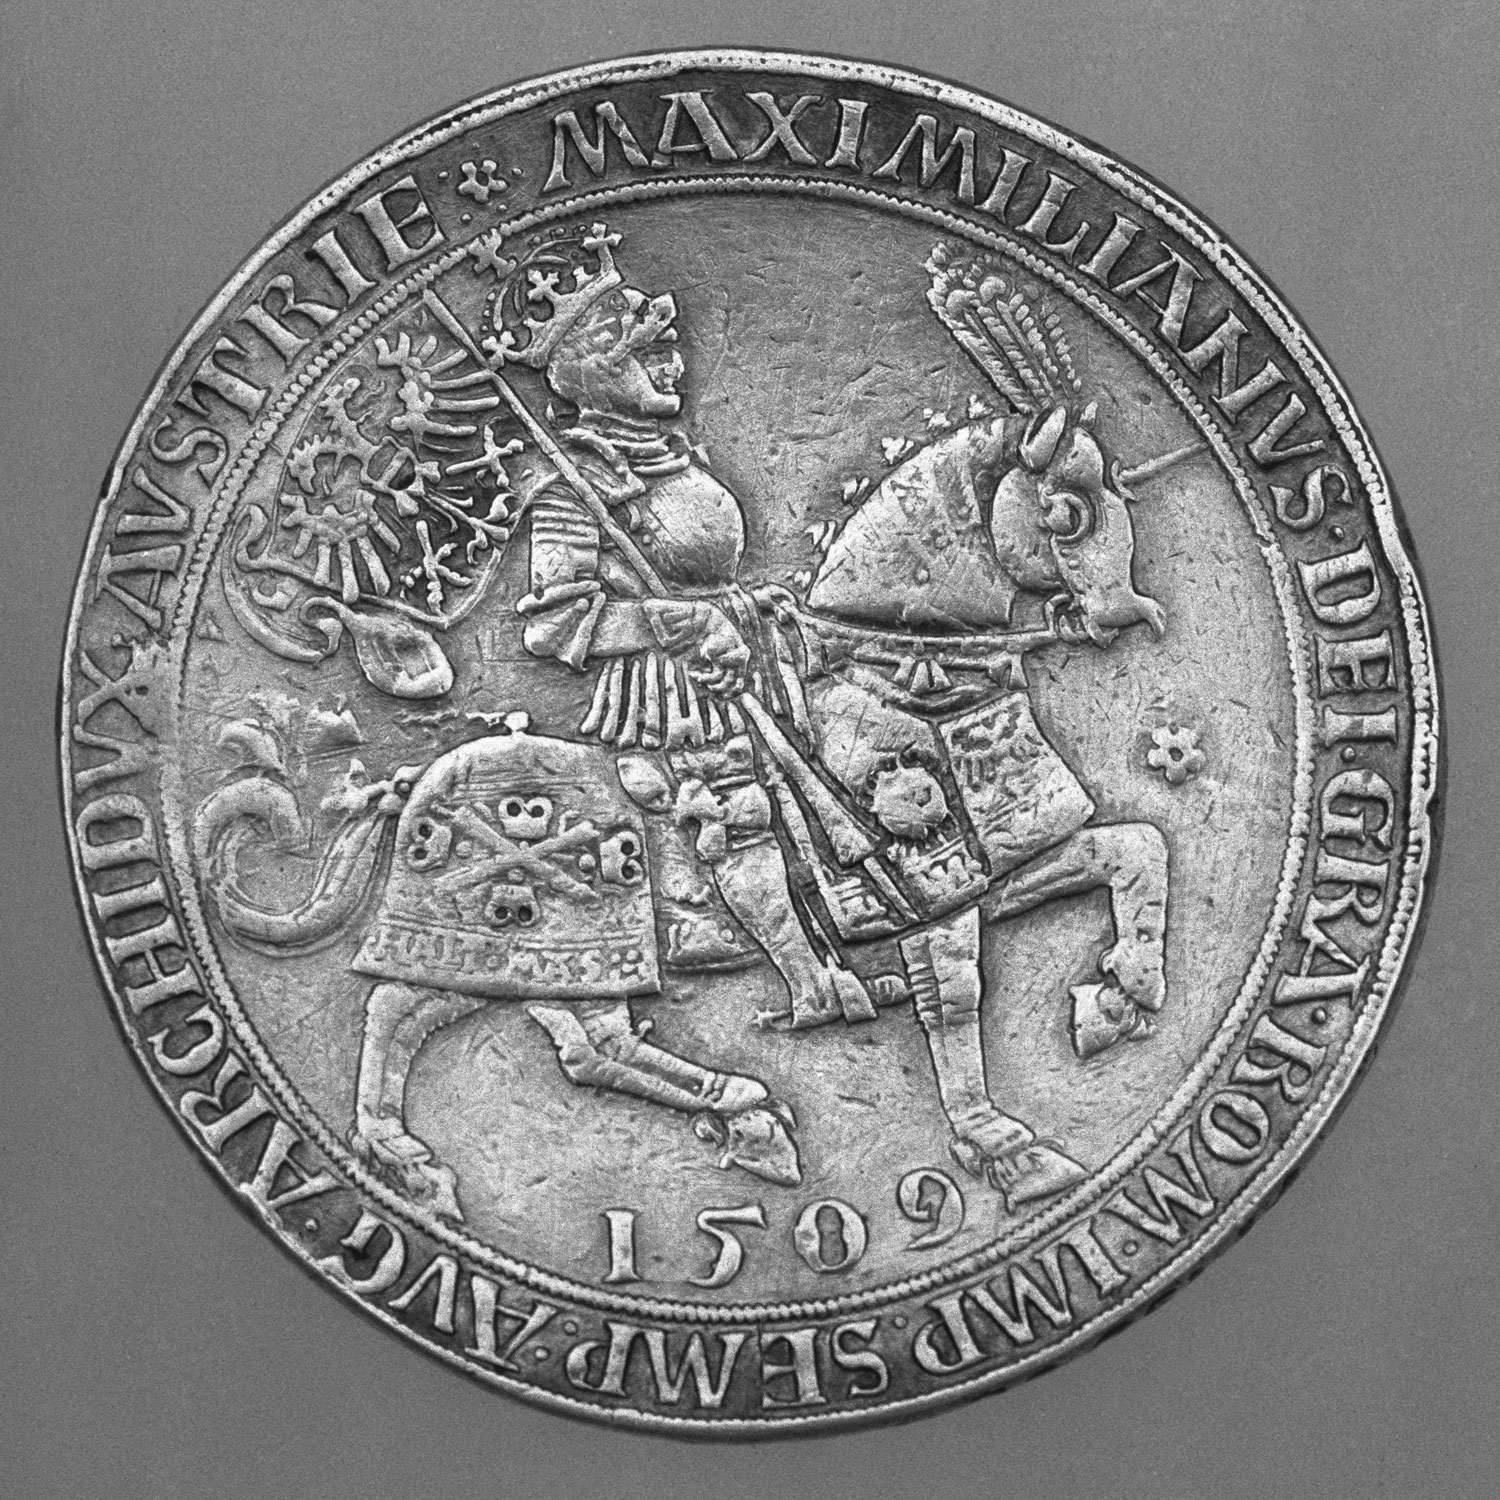 horse armor in europe essay heilbrunn timeline of art history 16th Century in America Jewelry presentation coin doppelguldiner showing maximilian i 1459 1519